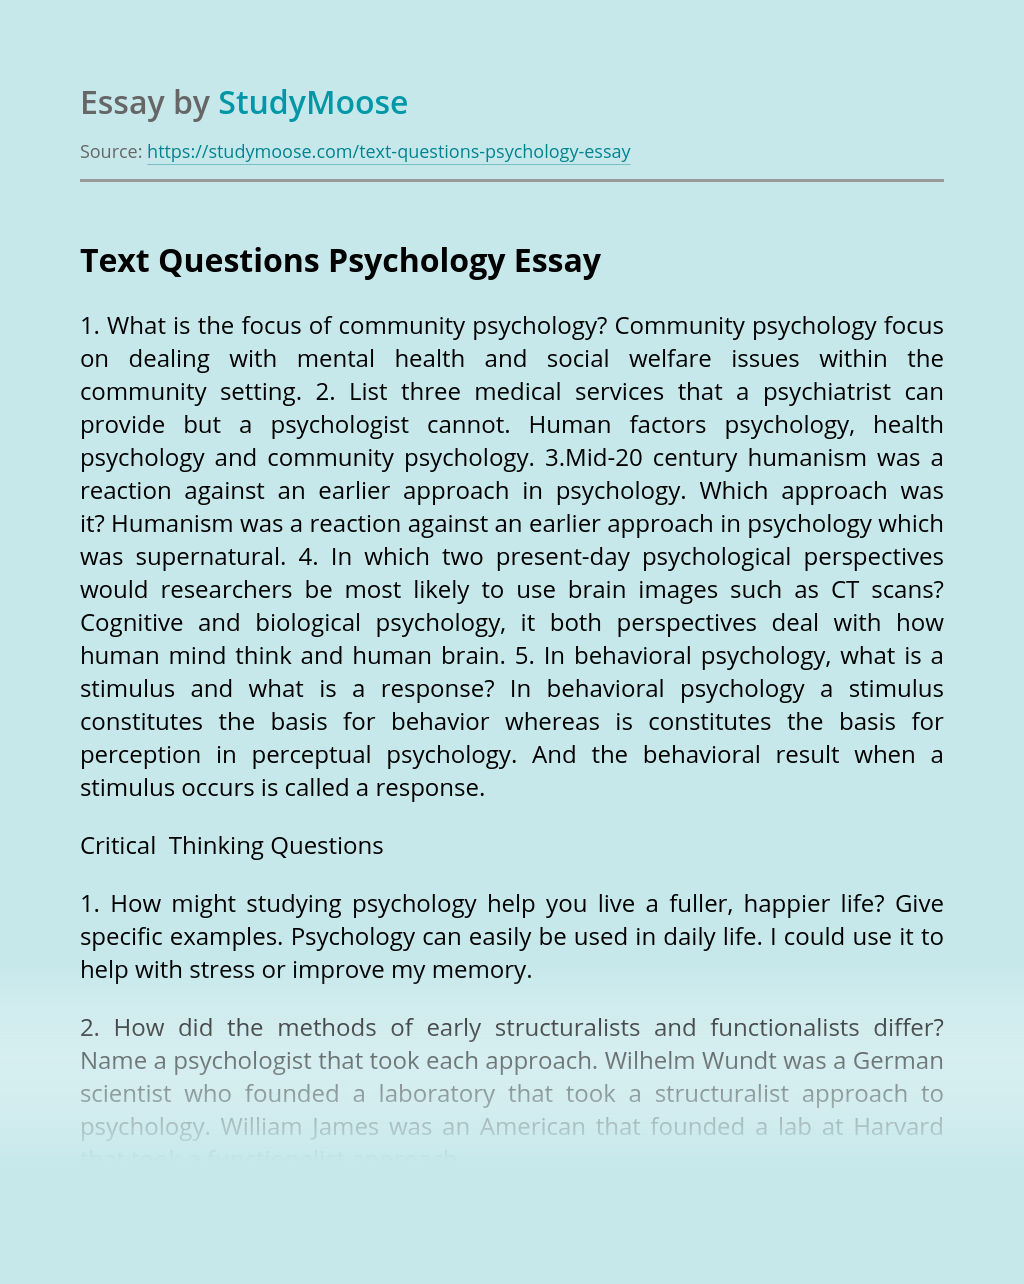 Text Questions Psychology